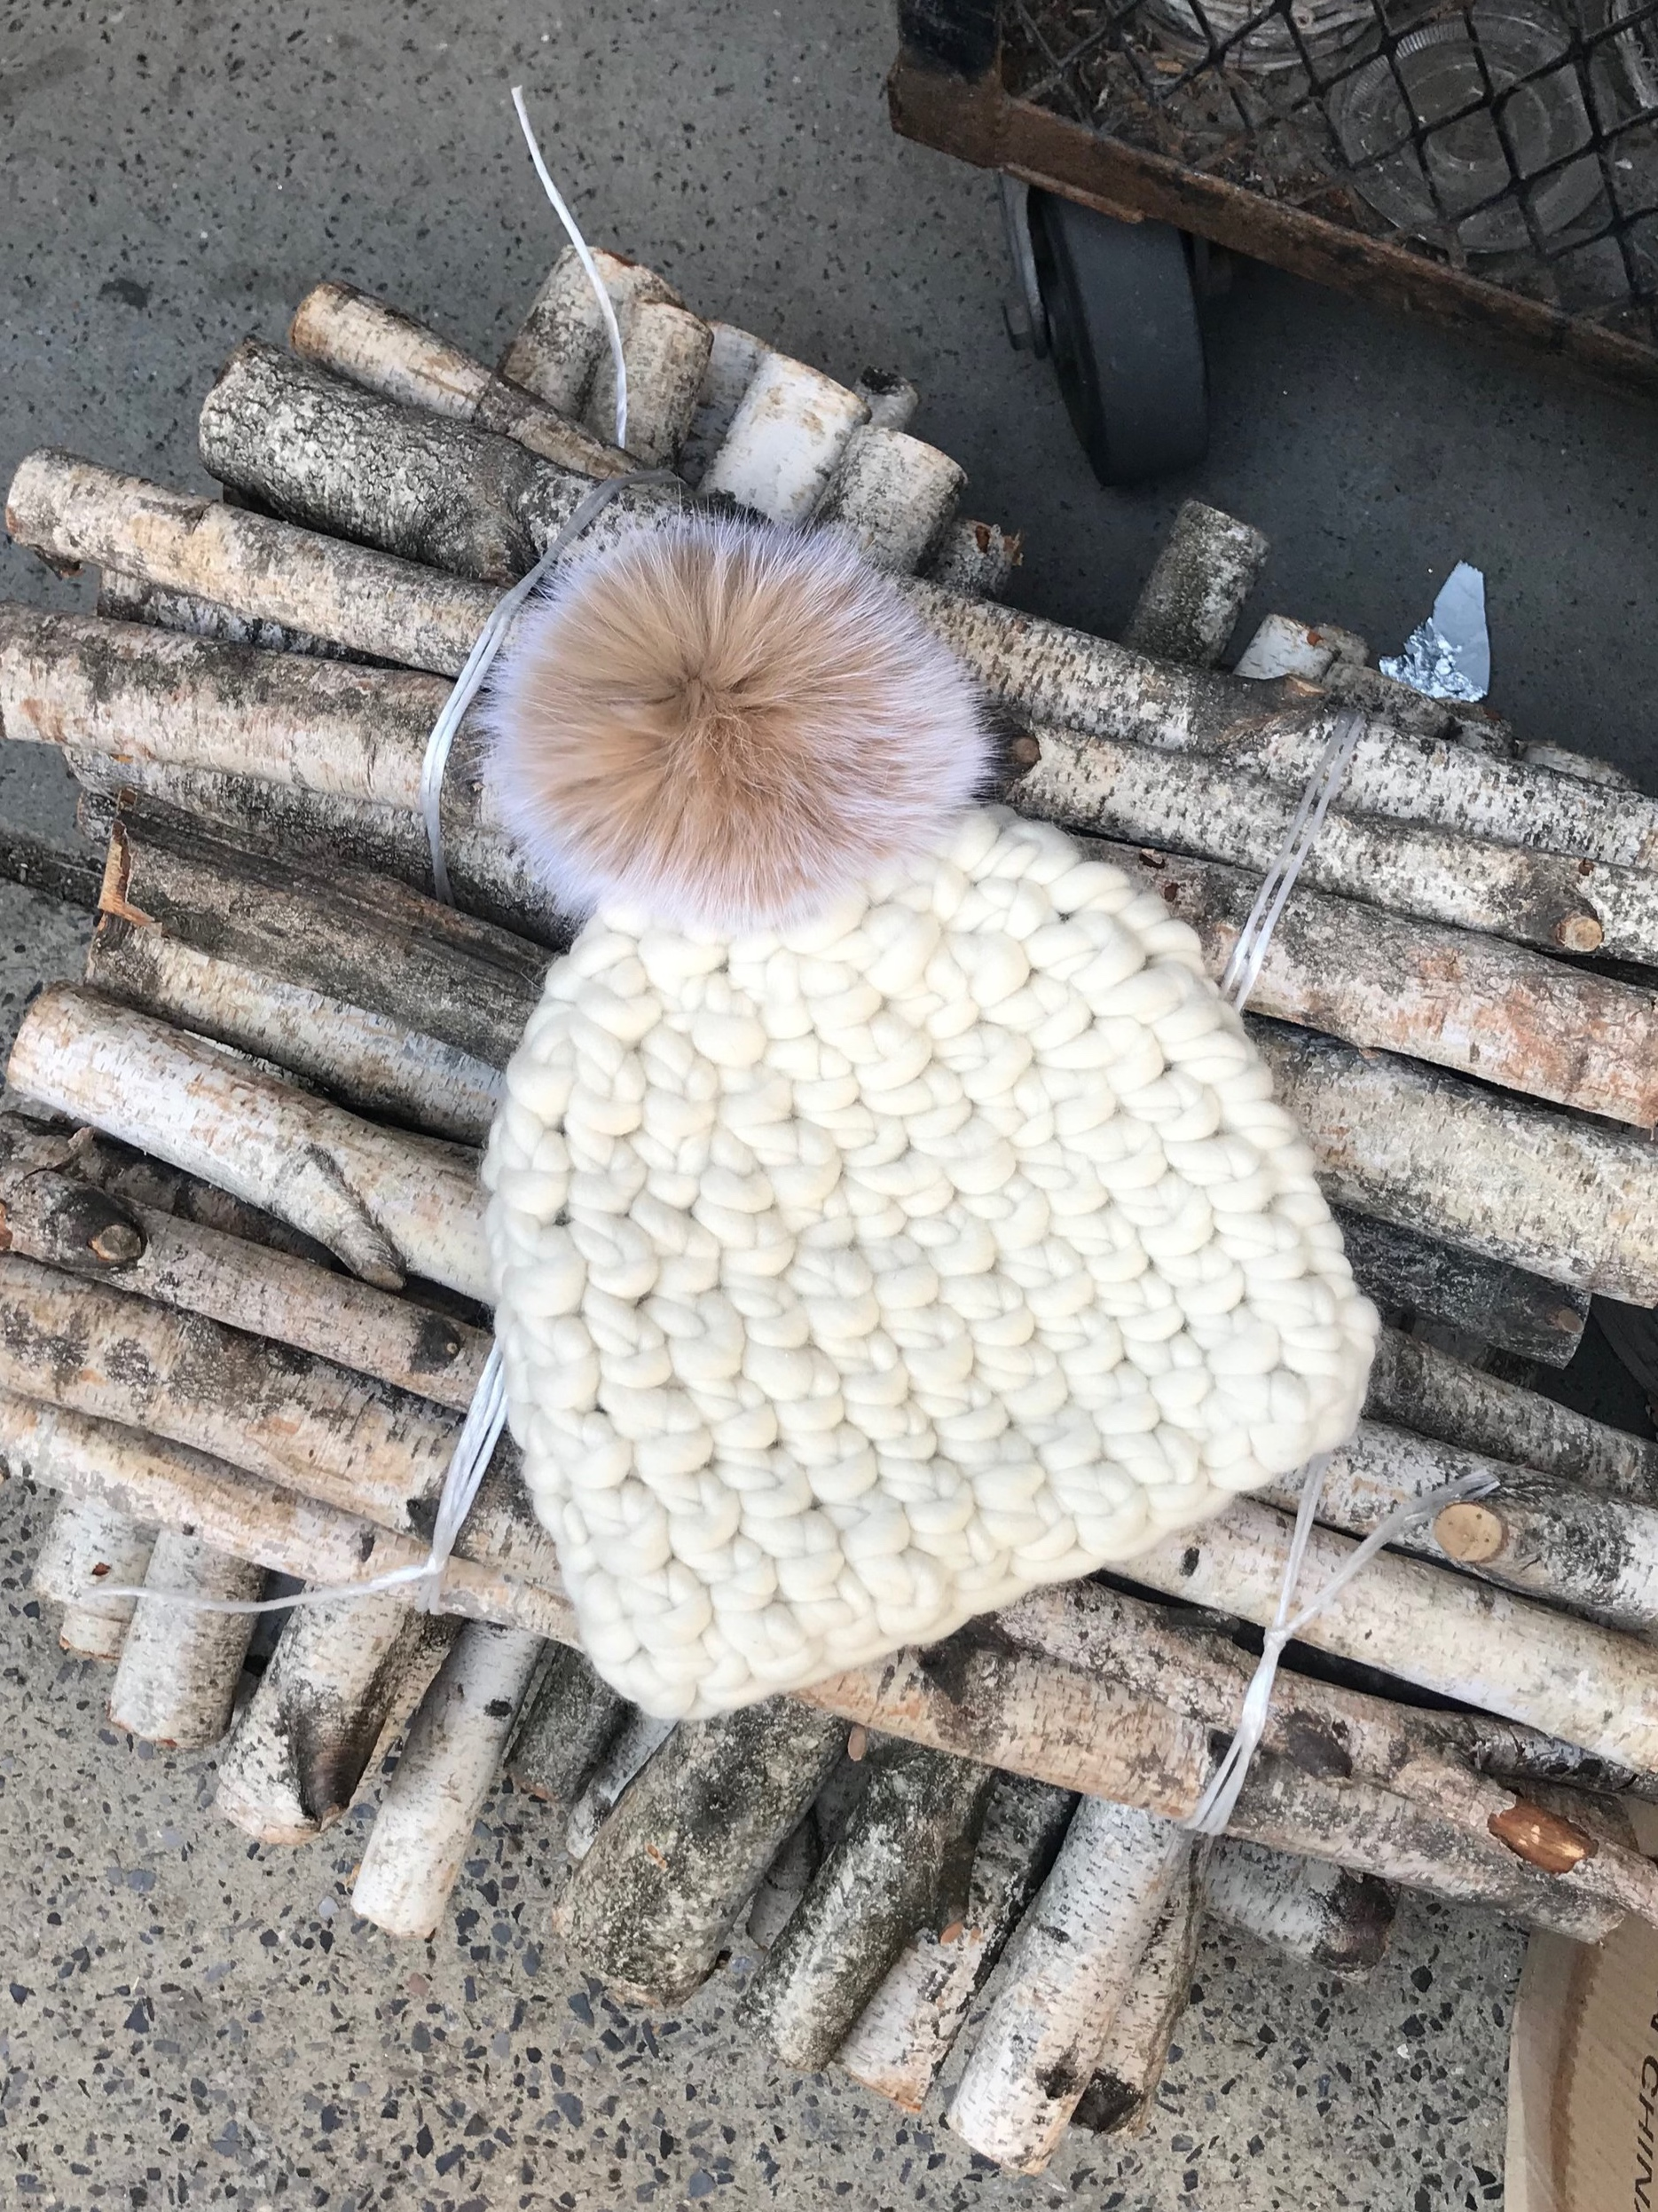 shaanti is wearing  the white beanie pomster with blush pom